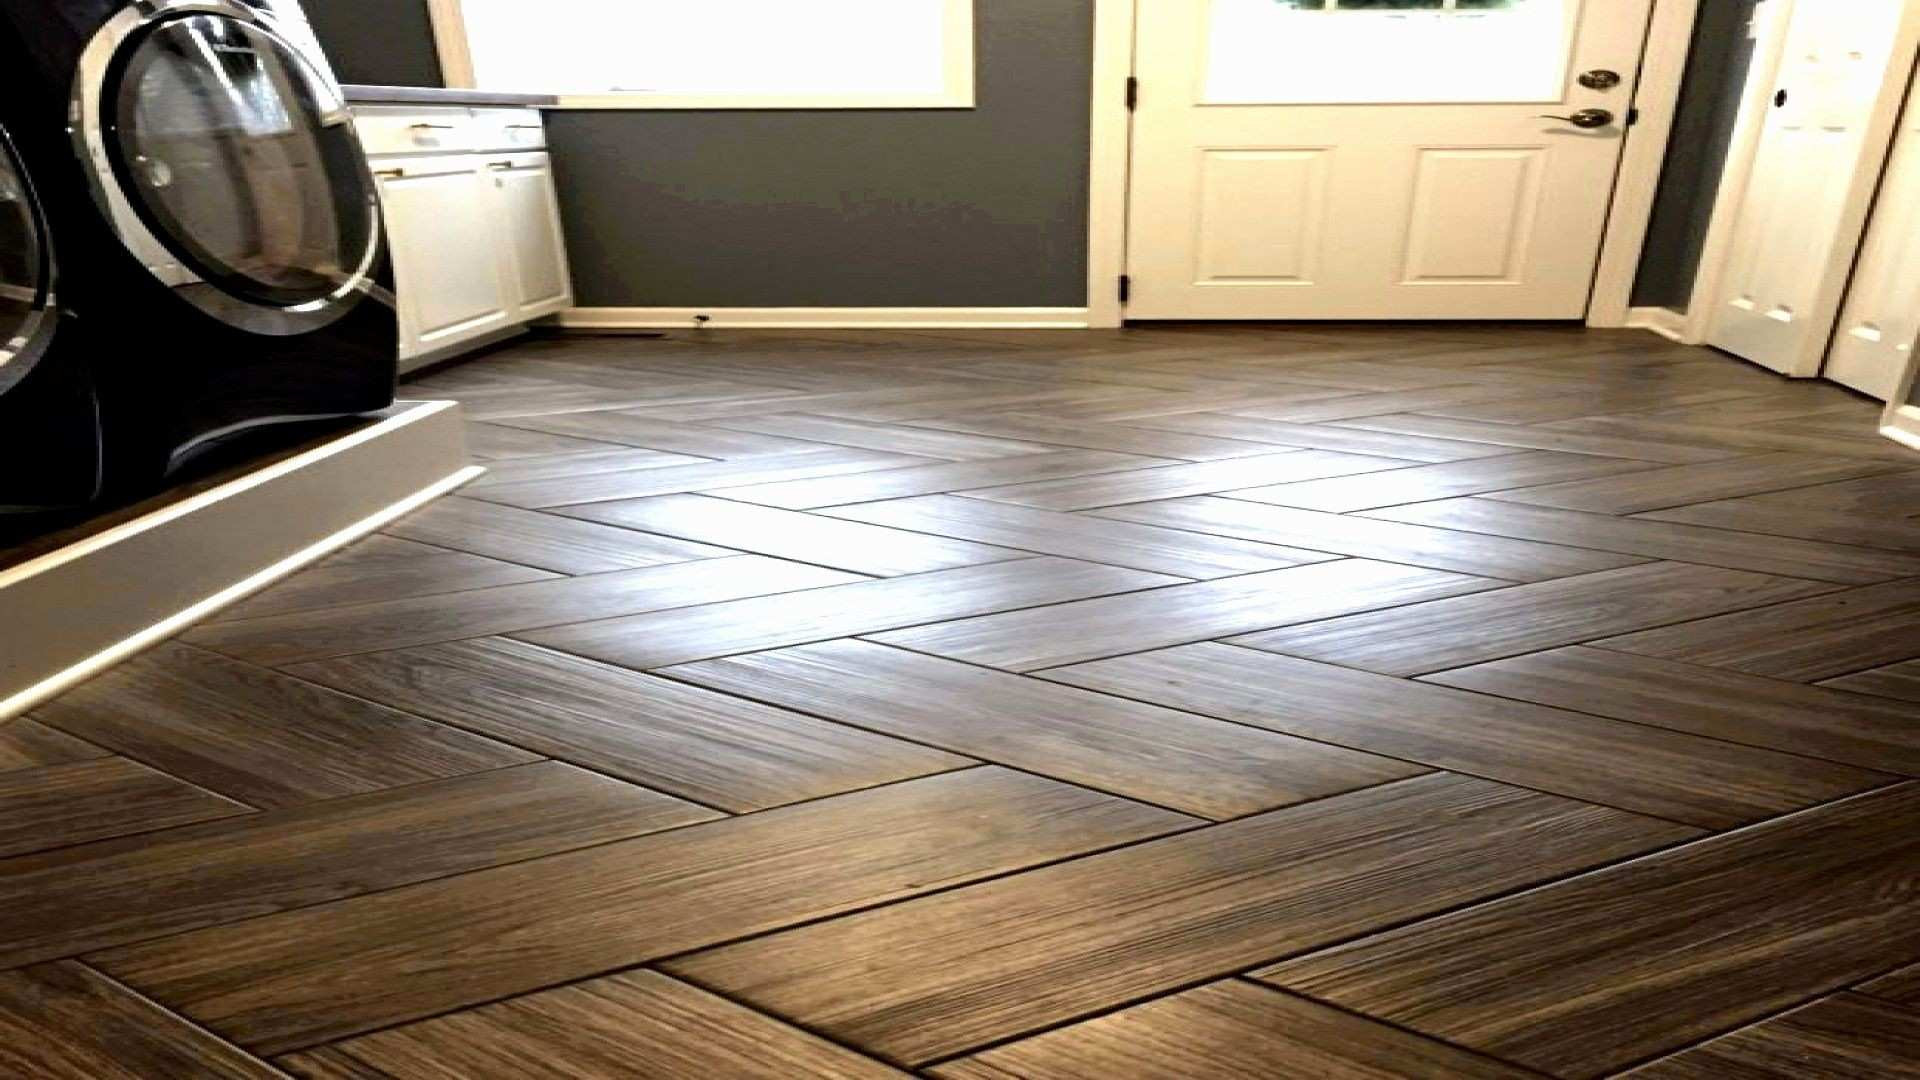 Armstrong White Oak Hardwood Flooring Of 30 Lovely Laminate Flooring Vs Wood Swansonsfuneralhomes Com Pertaining to Laminate Flooring Vs Wood Lovely 40 Best Way to Remove Vinyl Flooring From Concrete Concept